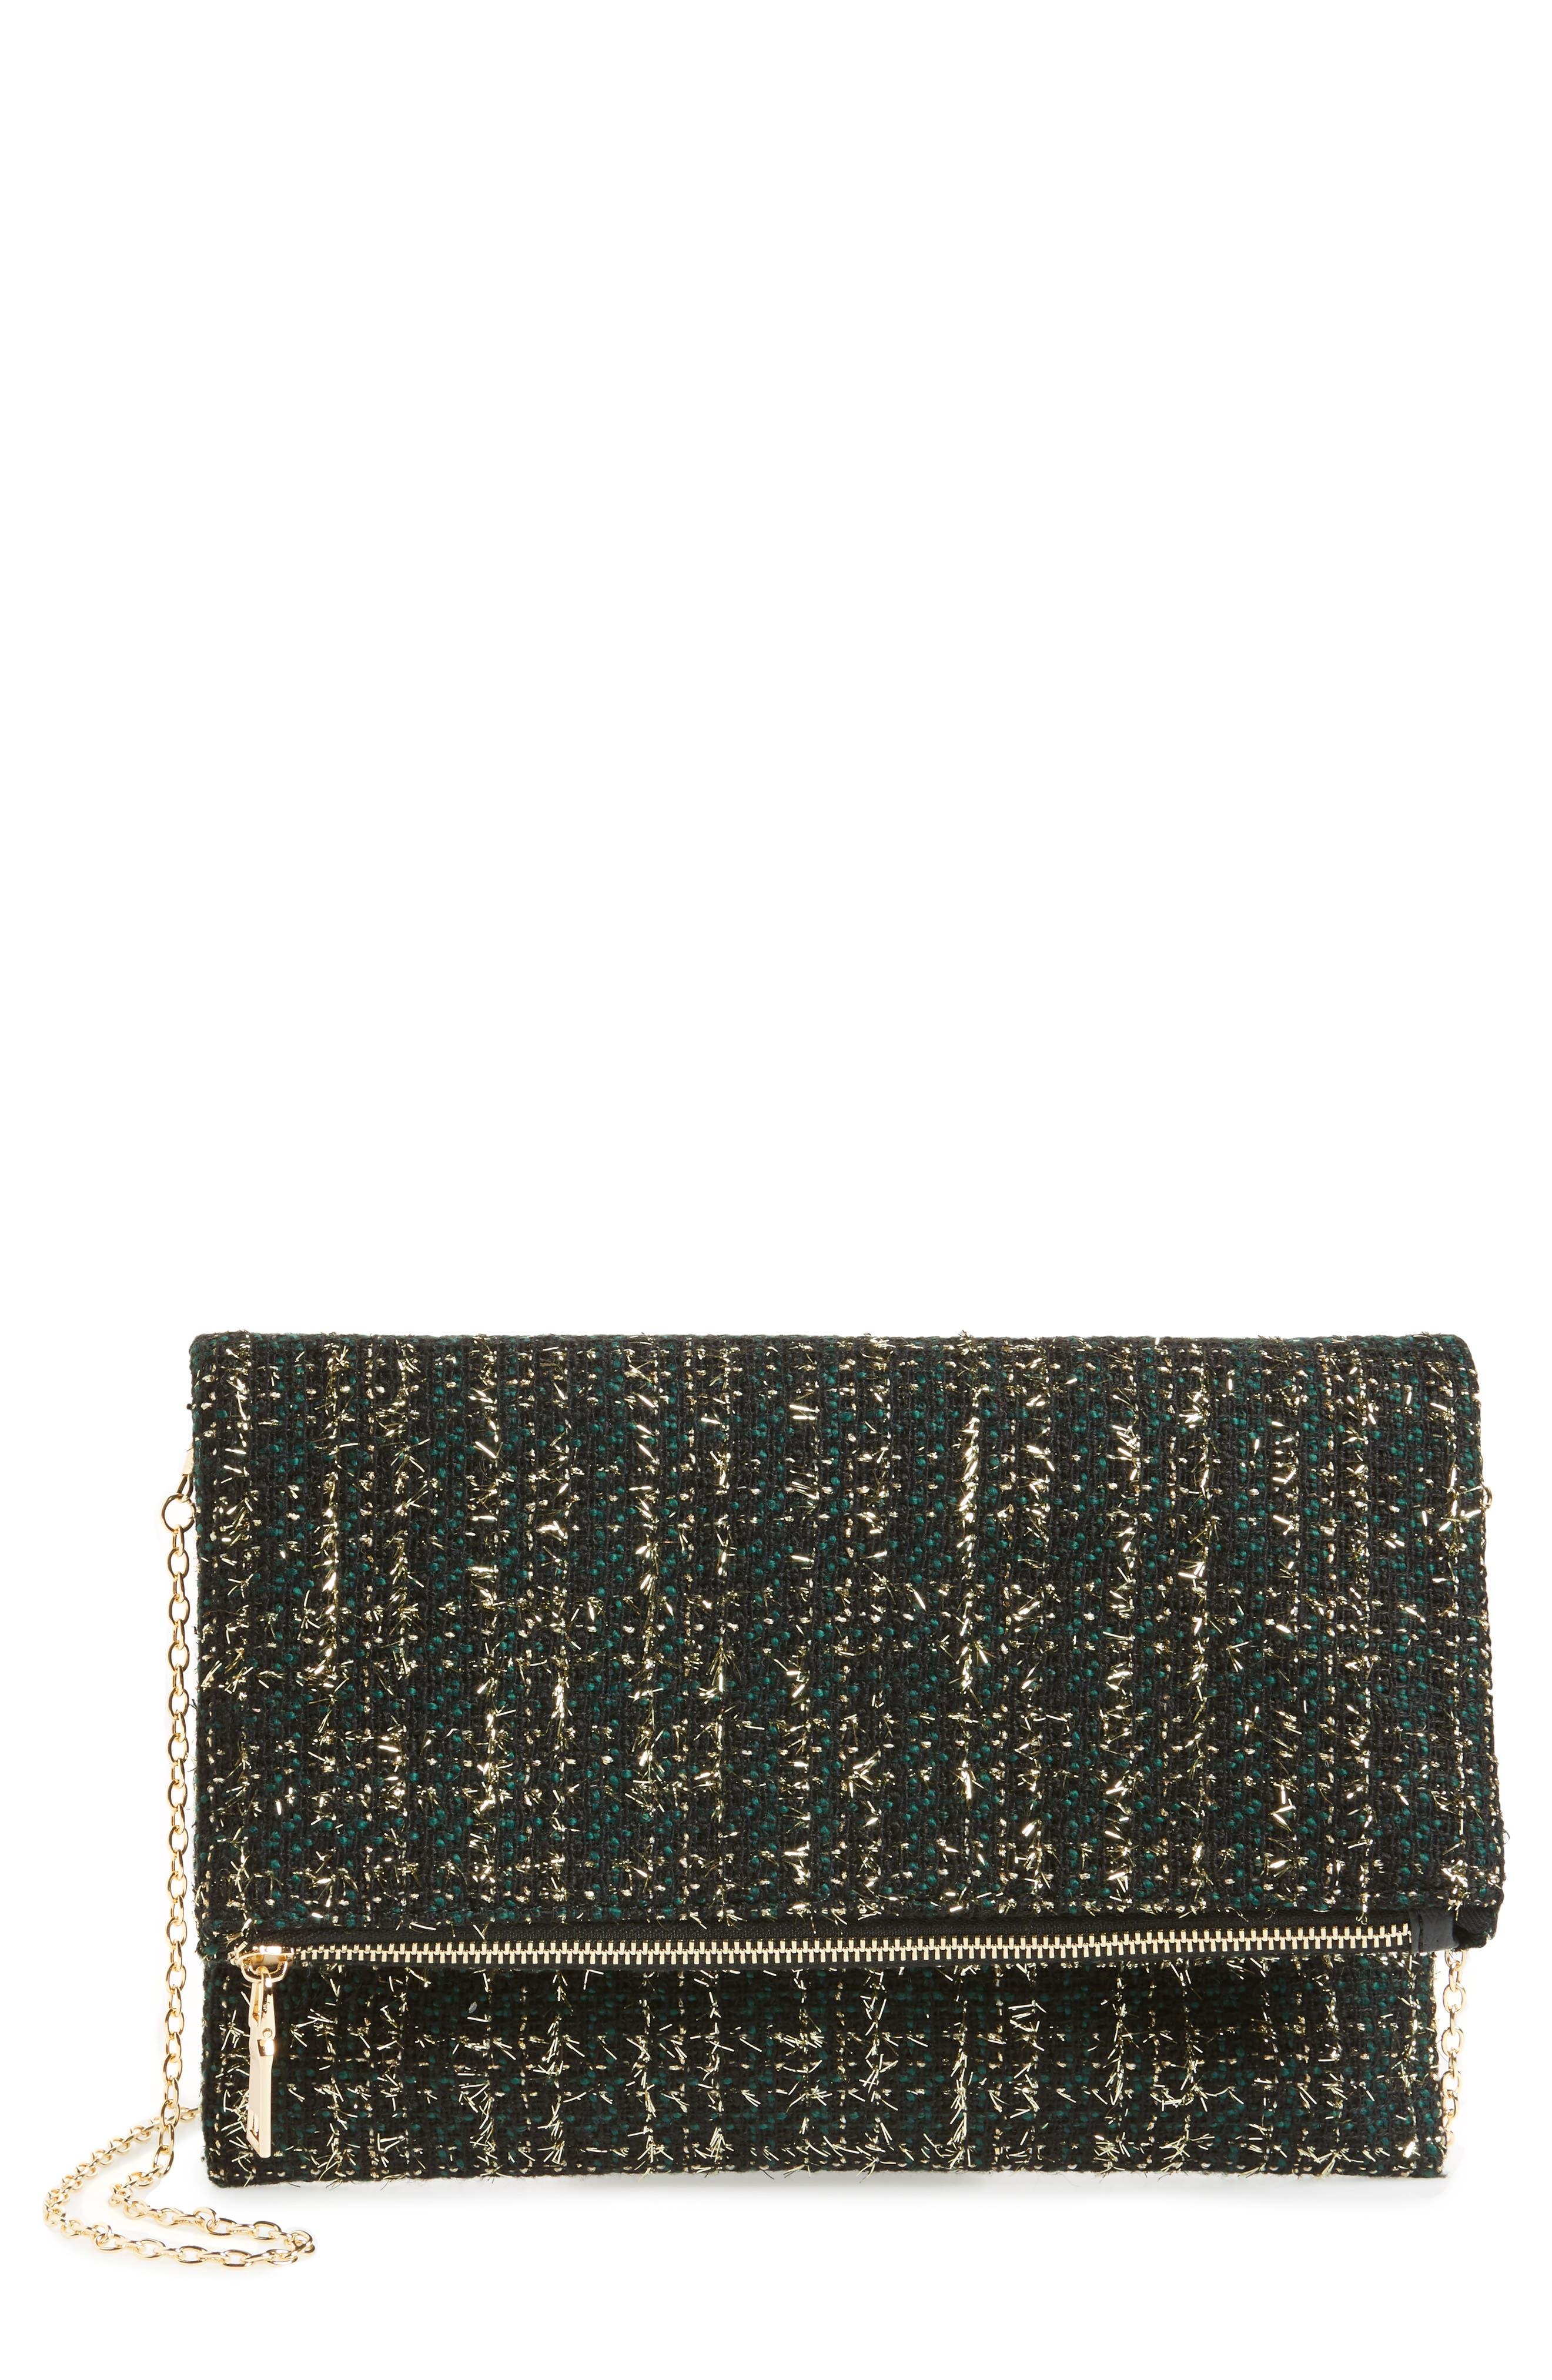 Main Image - Sole Society Tweed Foldover Clutch